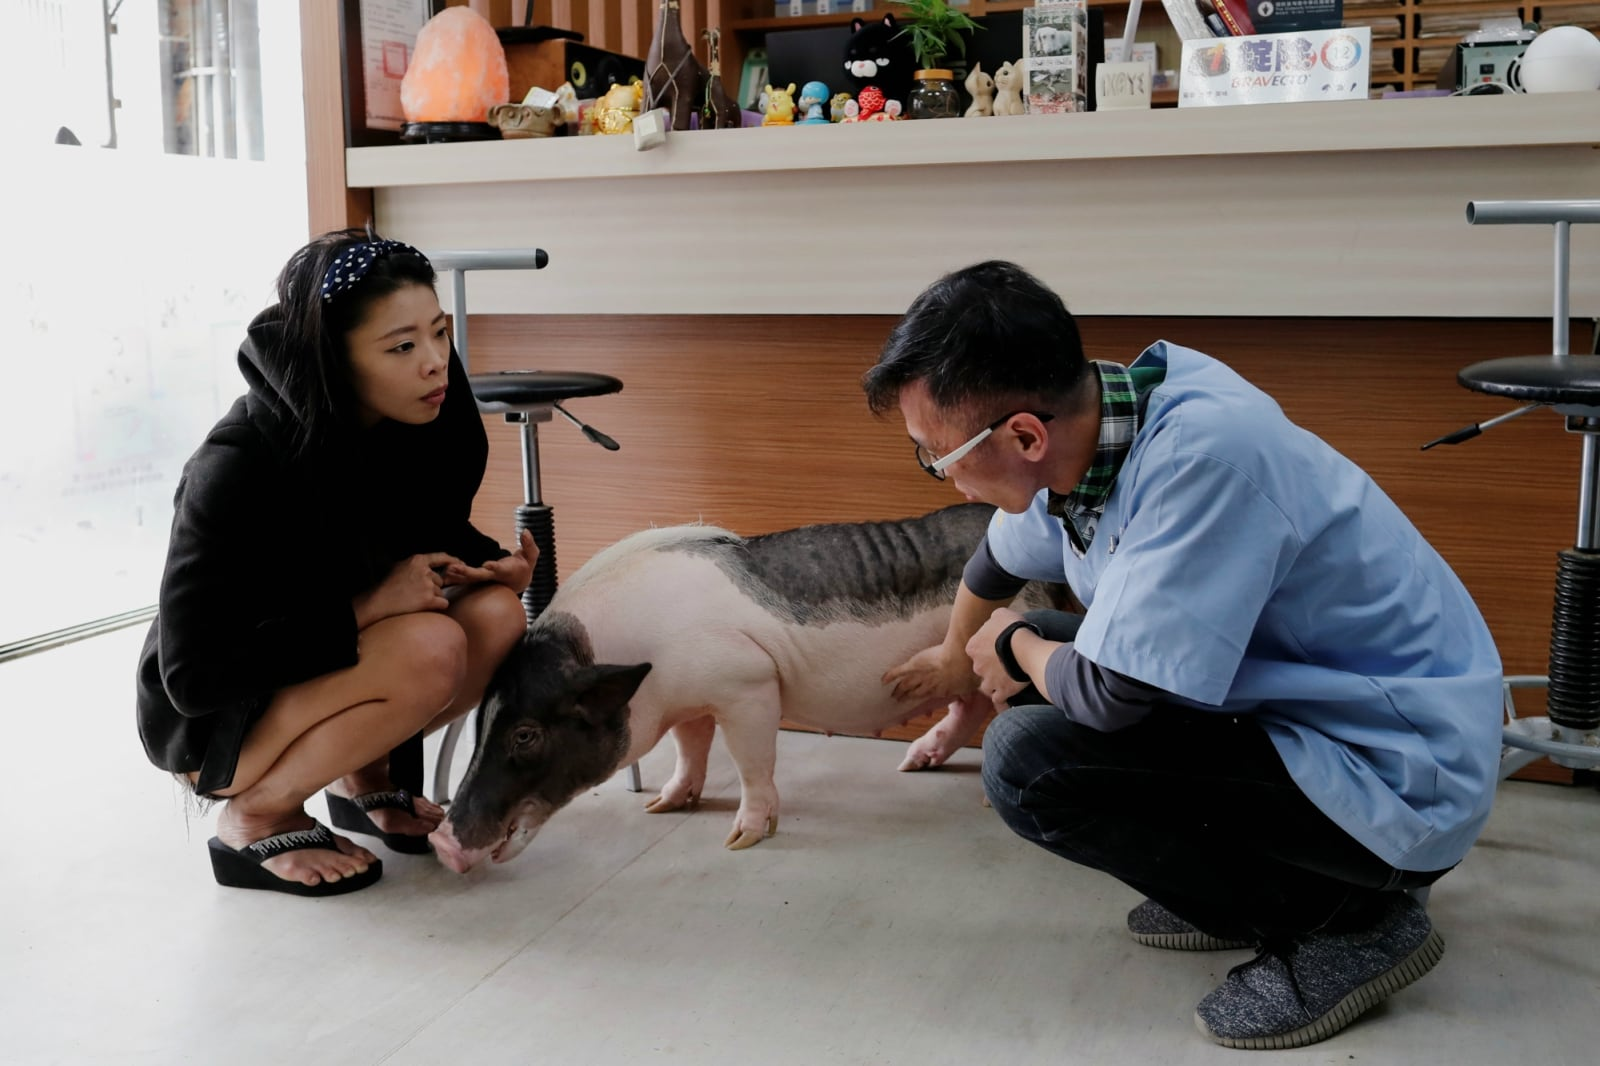 Ge Ge, a pet pig reacts near her owner Guo Sheng-Syuan and veterinarian Chang Chien-Ming during a check up at vet clinic, in Taoyuan, Taiwan January 30, 2019. REUTERS/Tyrone Siu